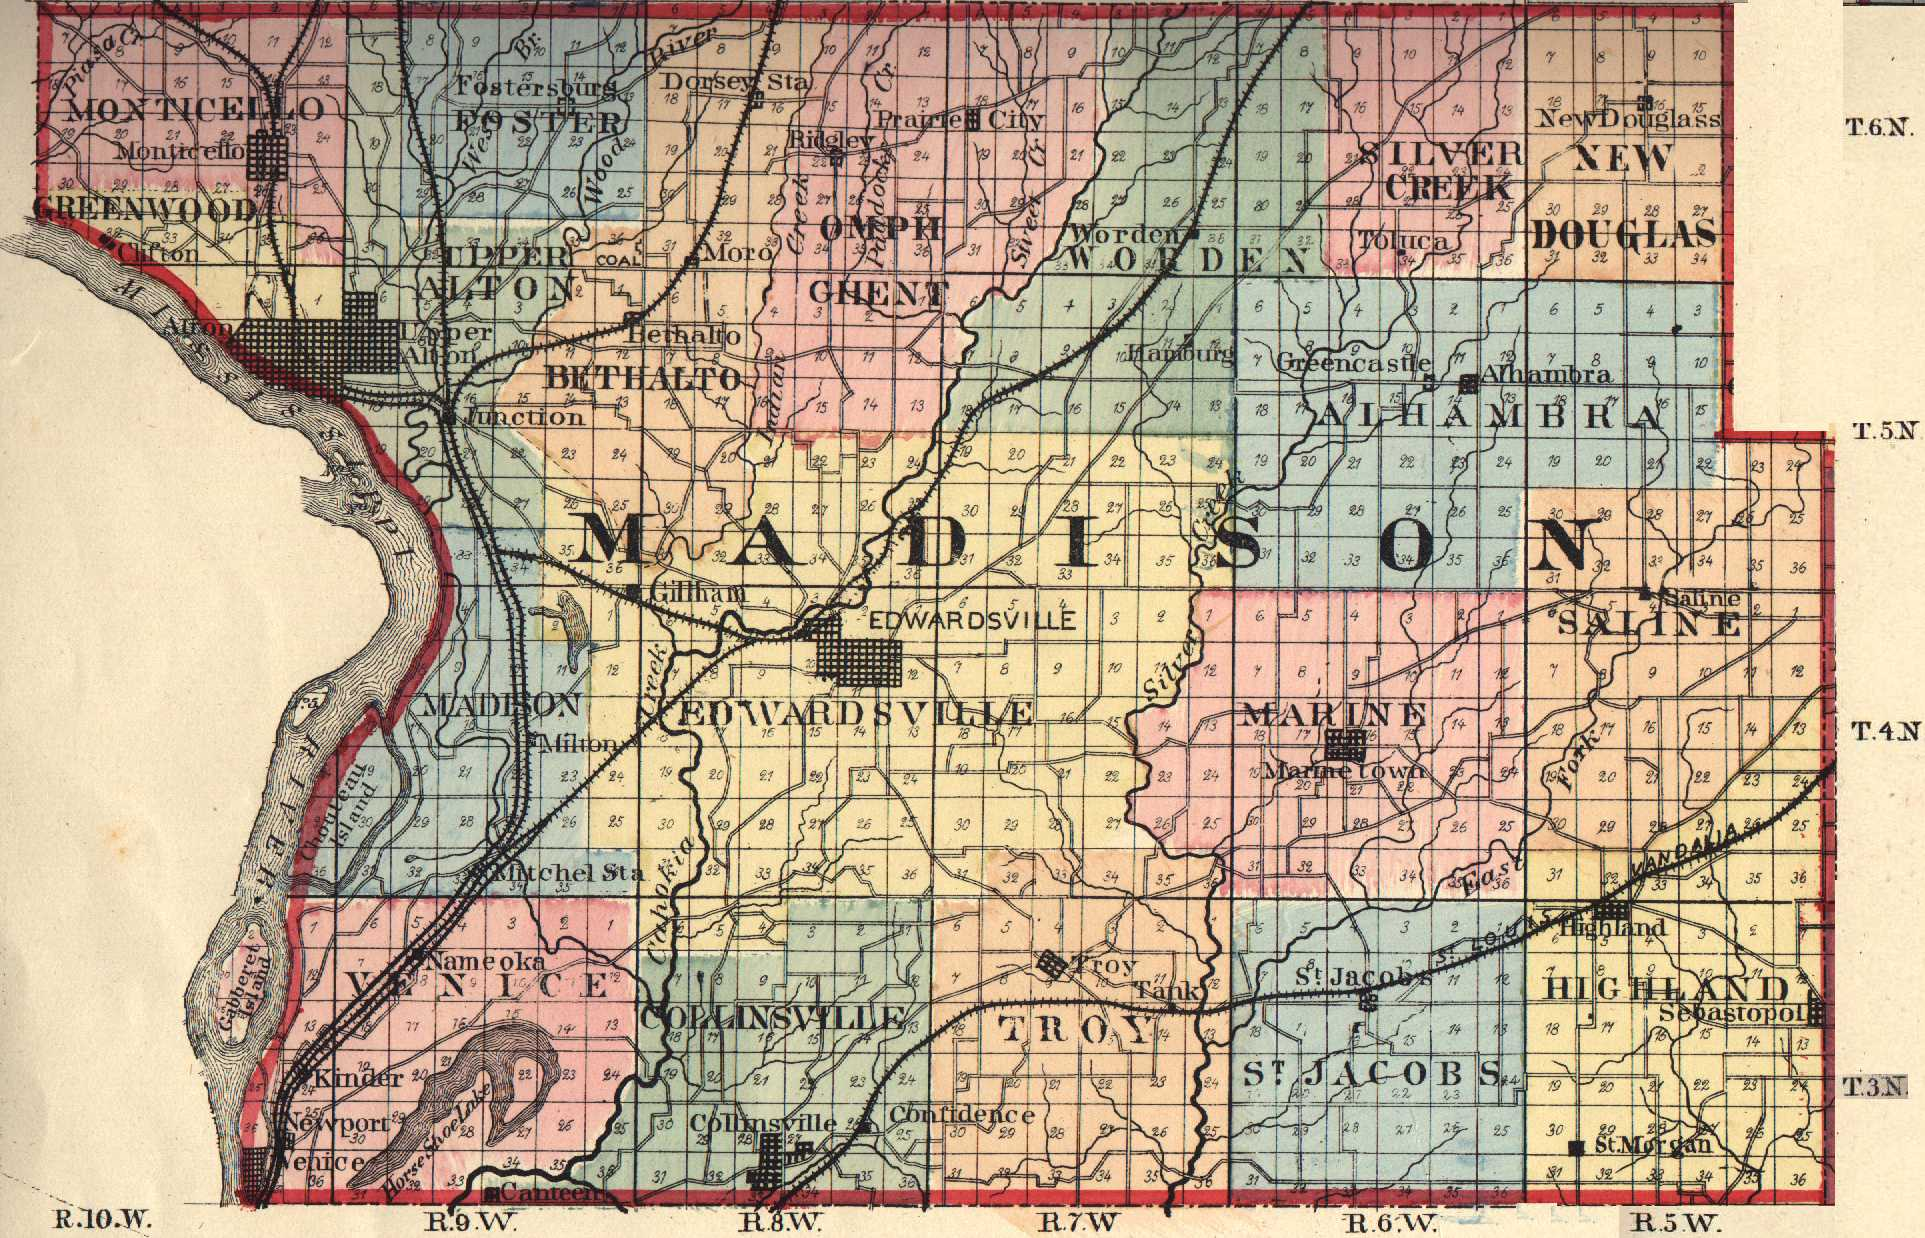 Madison County Illinois Maps and Gazetteers